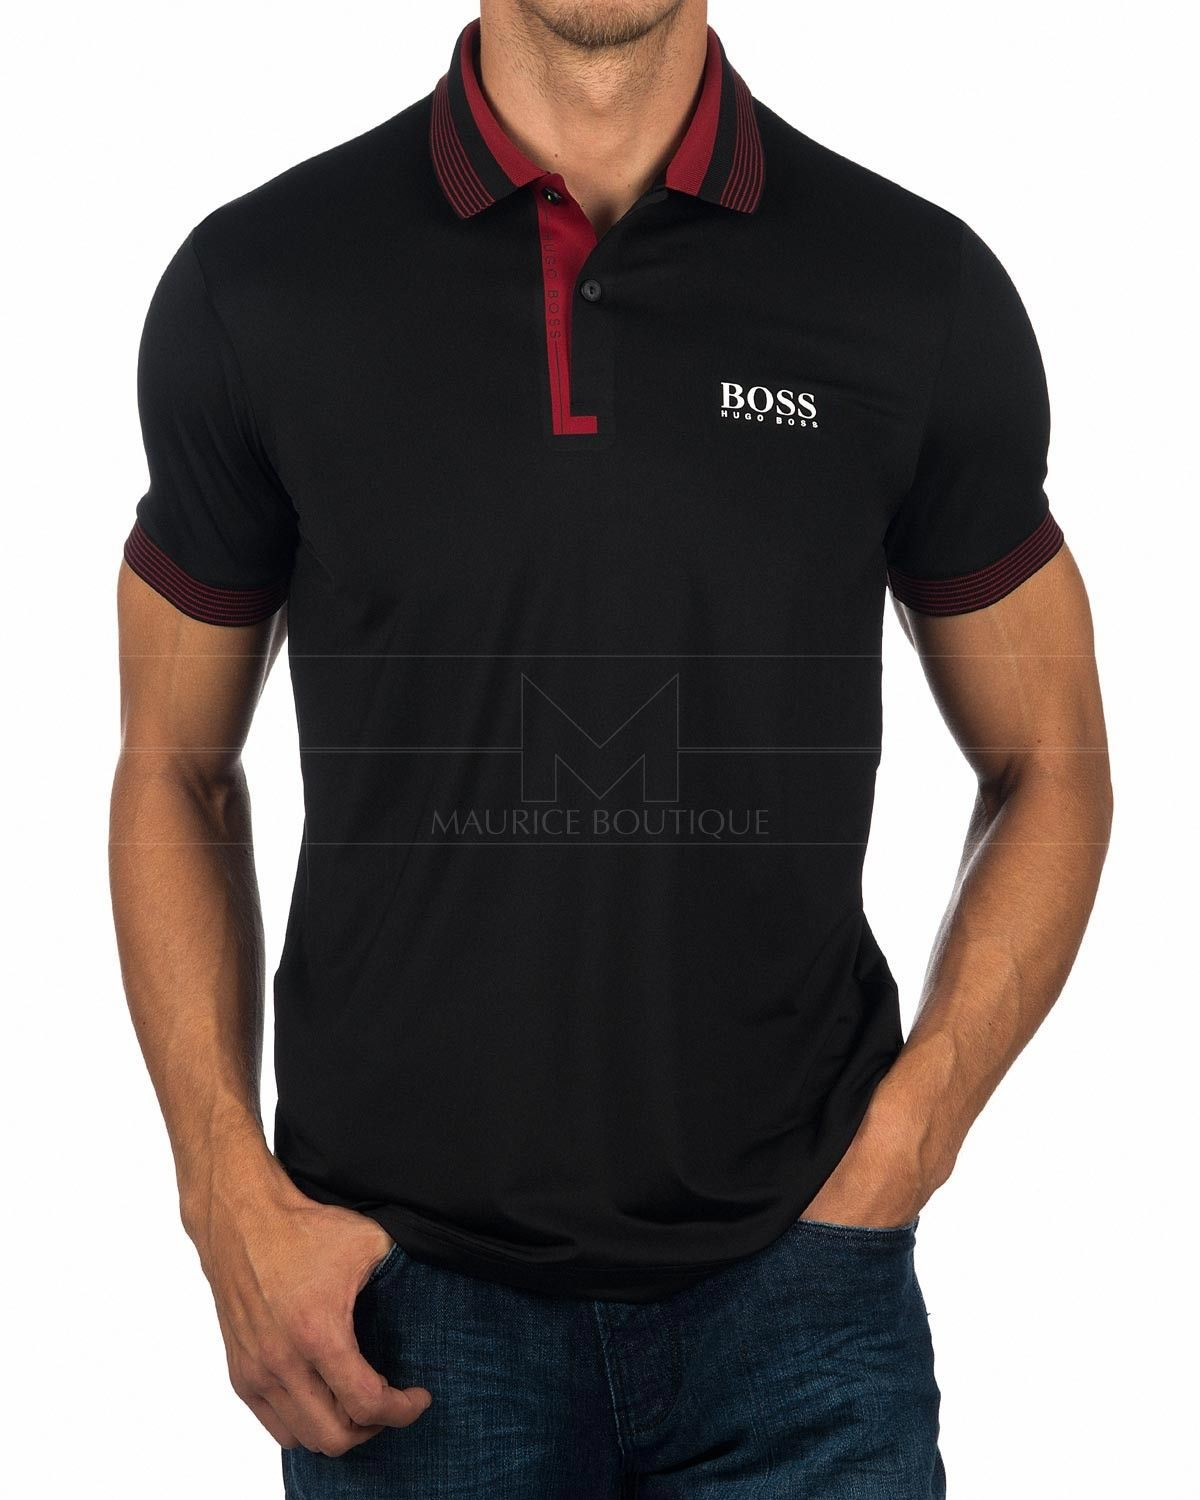 c1715eef5 Hugo Boss Polo Shirts - Paddy Pro 1 Red in 2019 | Dome 2 | Hugo boss ...